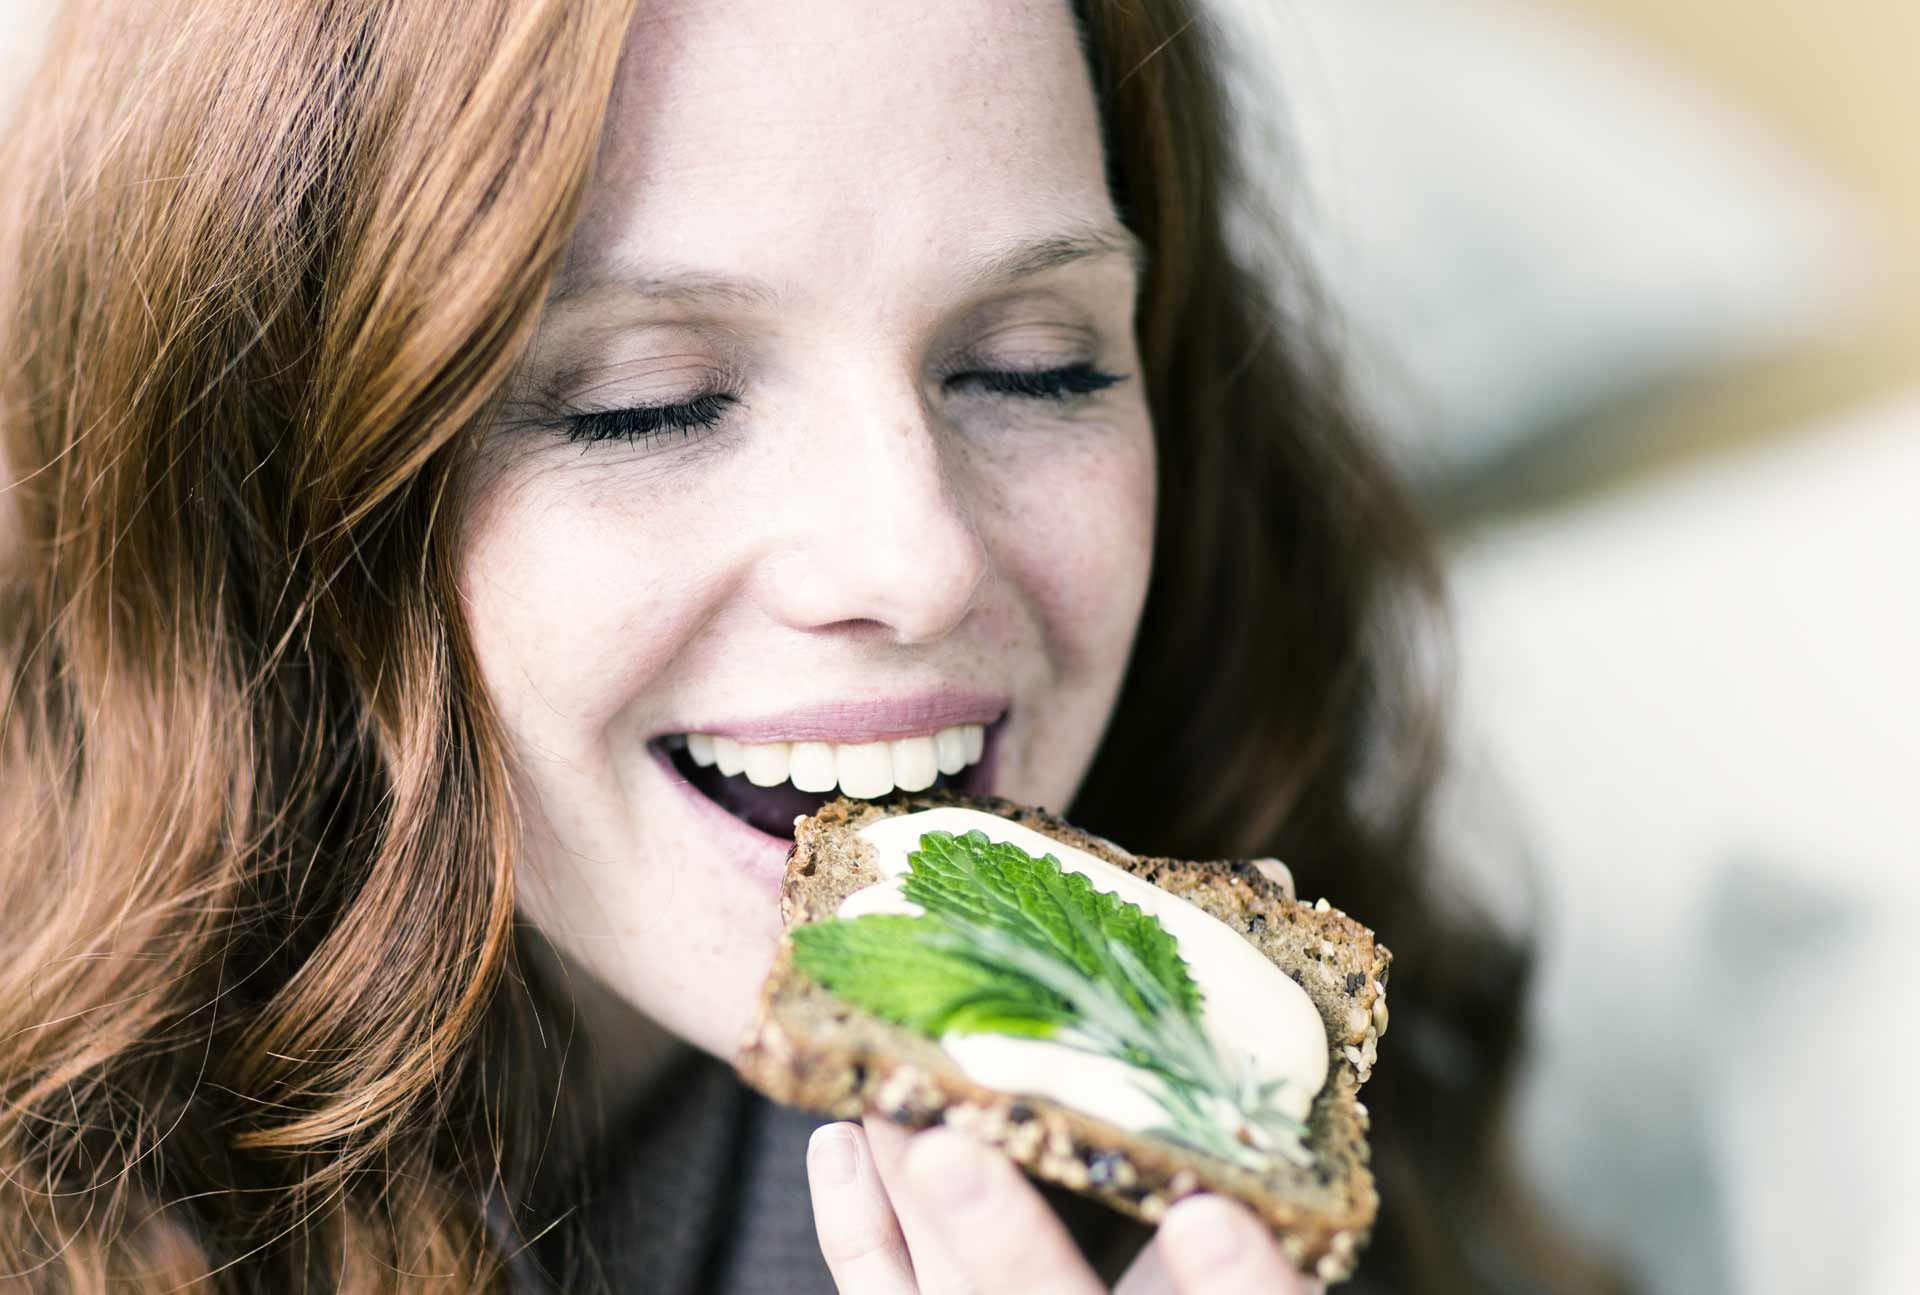 vegan girl eating bread with reolì spreadable oil